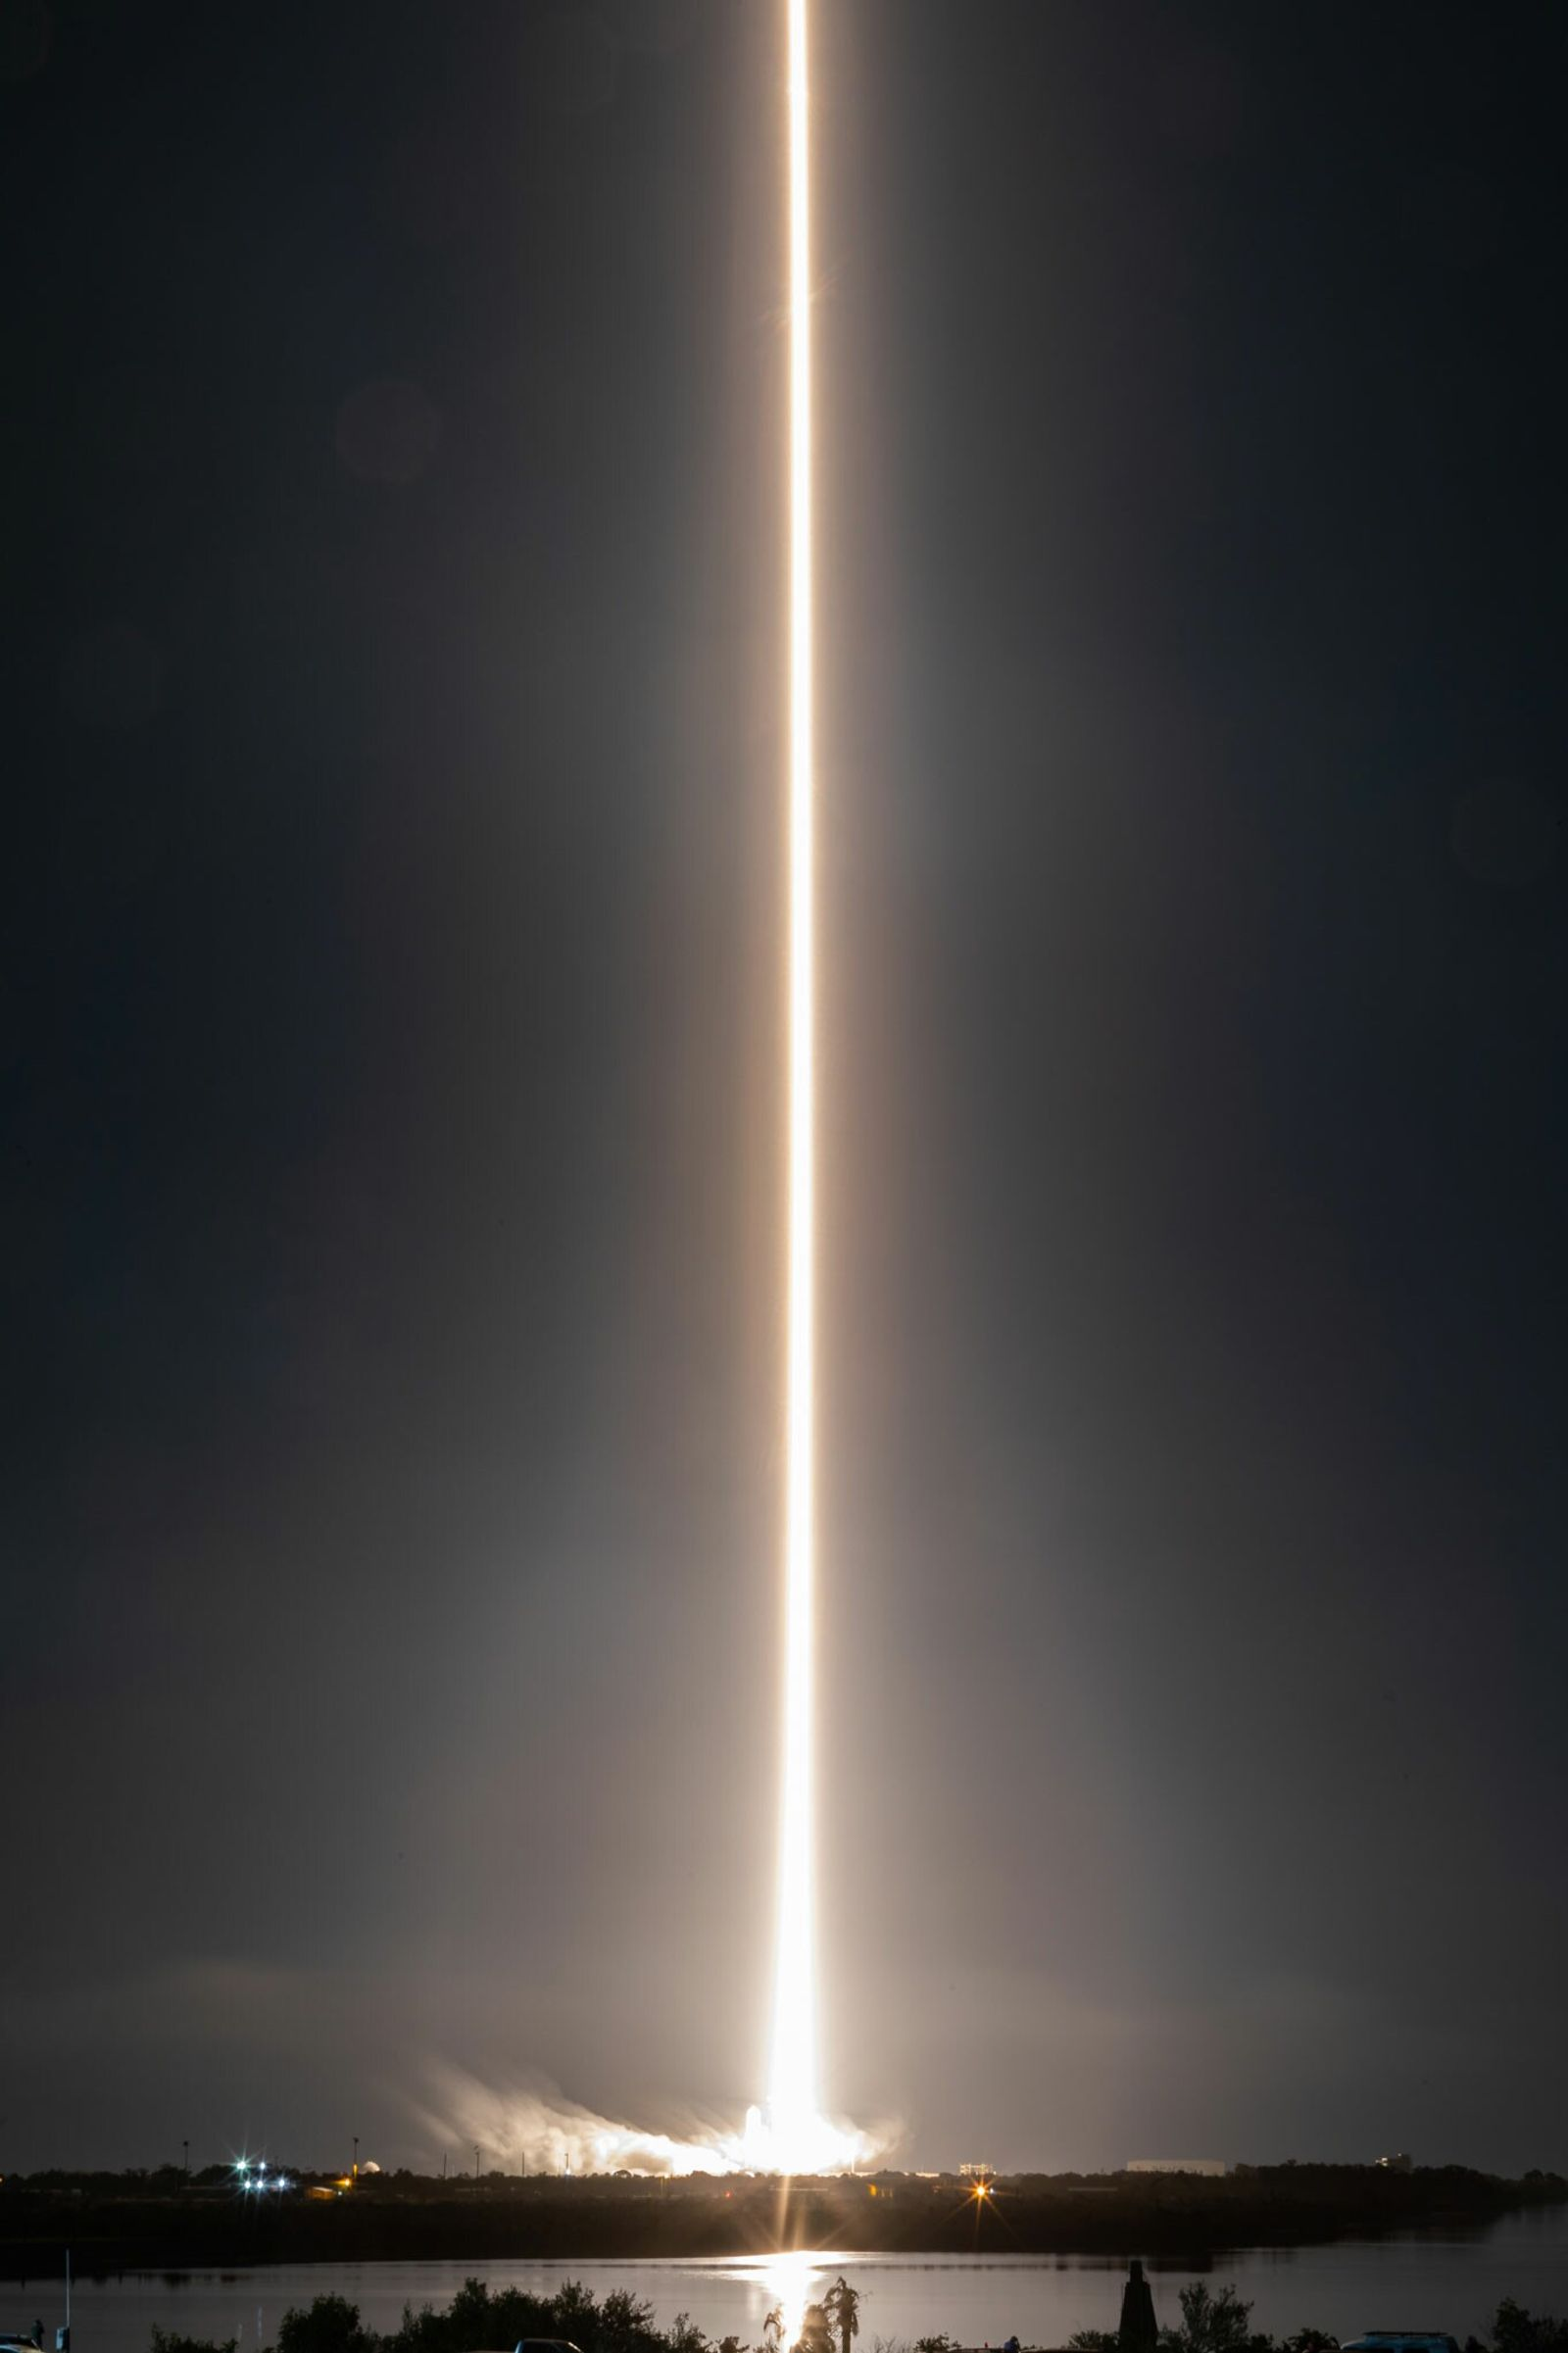 A Falcon 9 rocket carrying the Crew-1 mission lifts off the launch pad at NASA's Kennedy ...